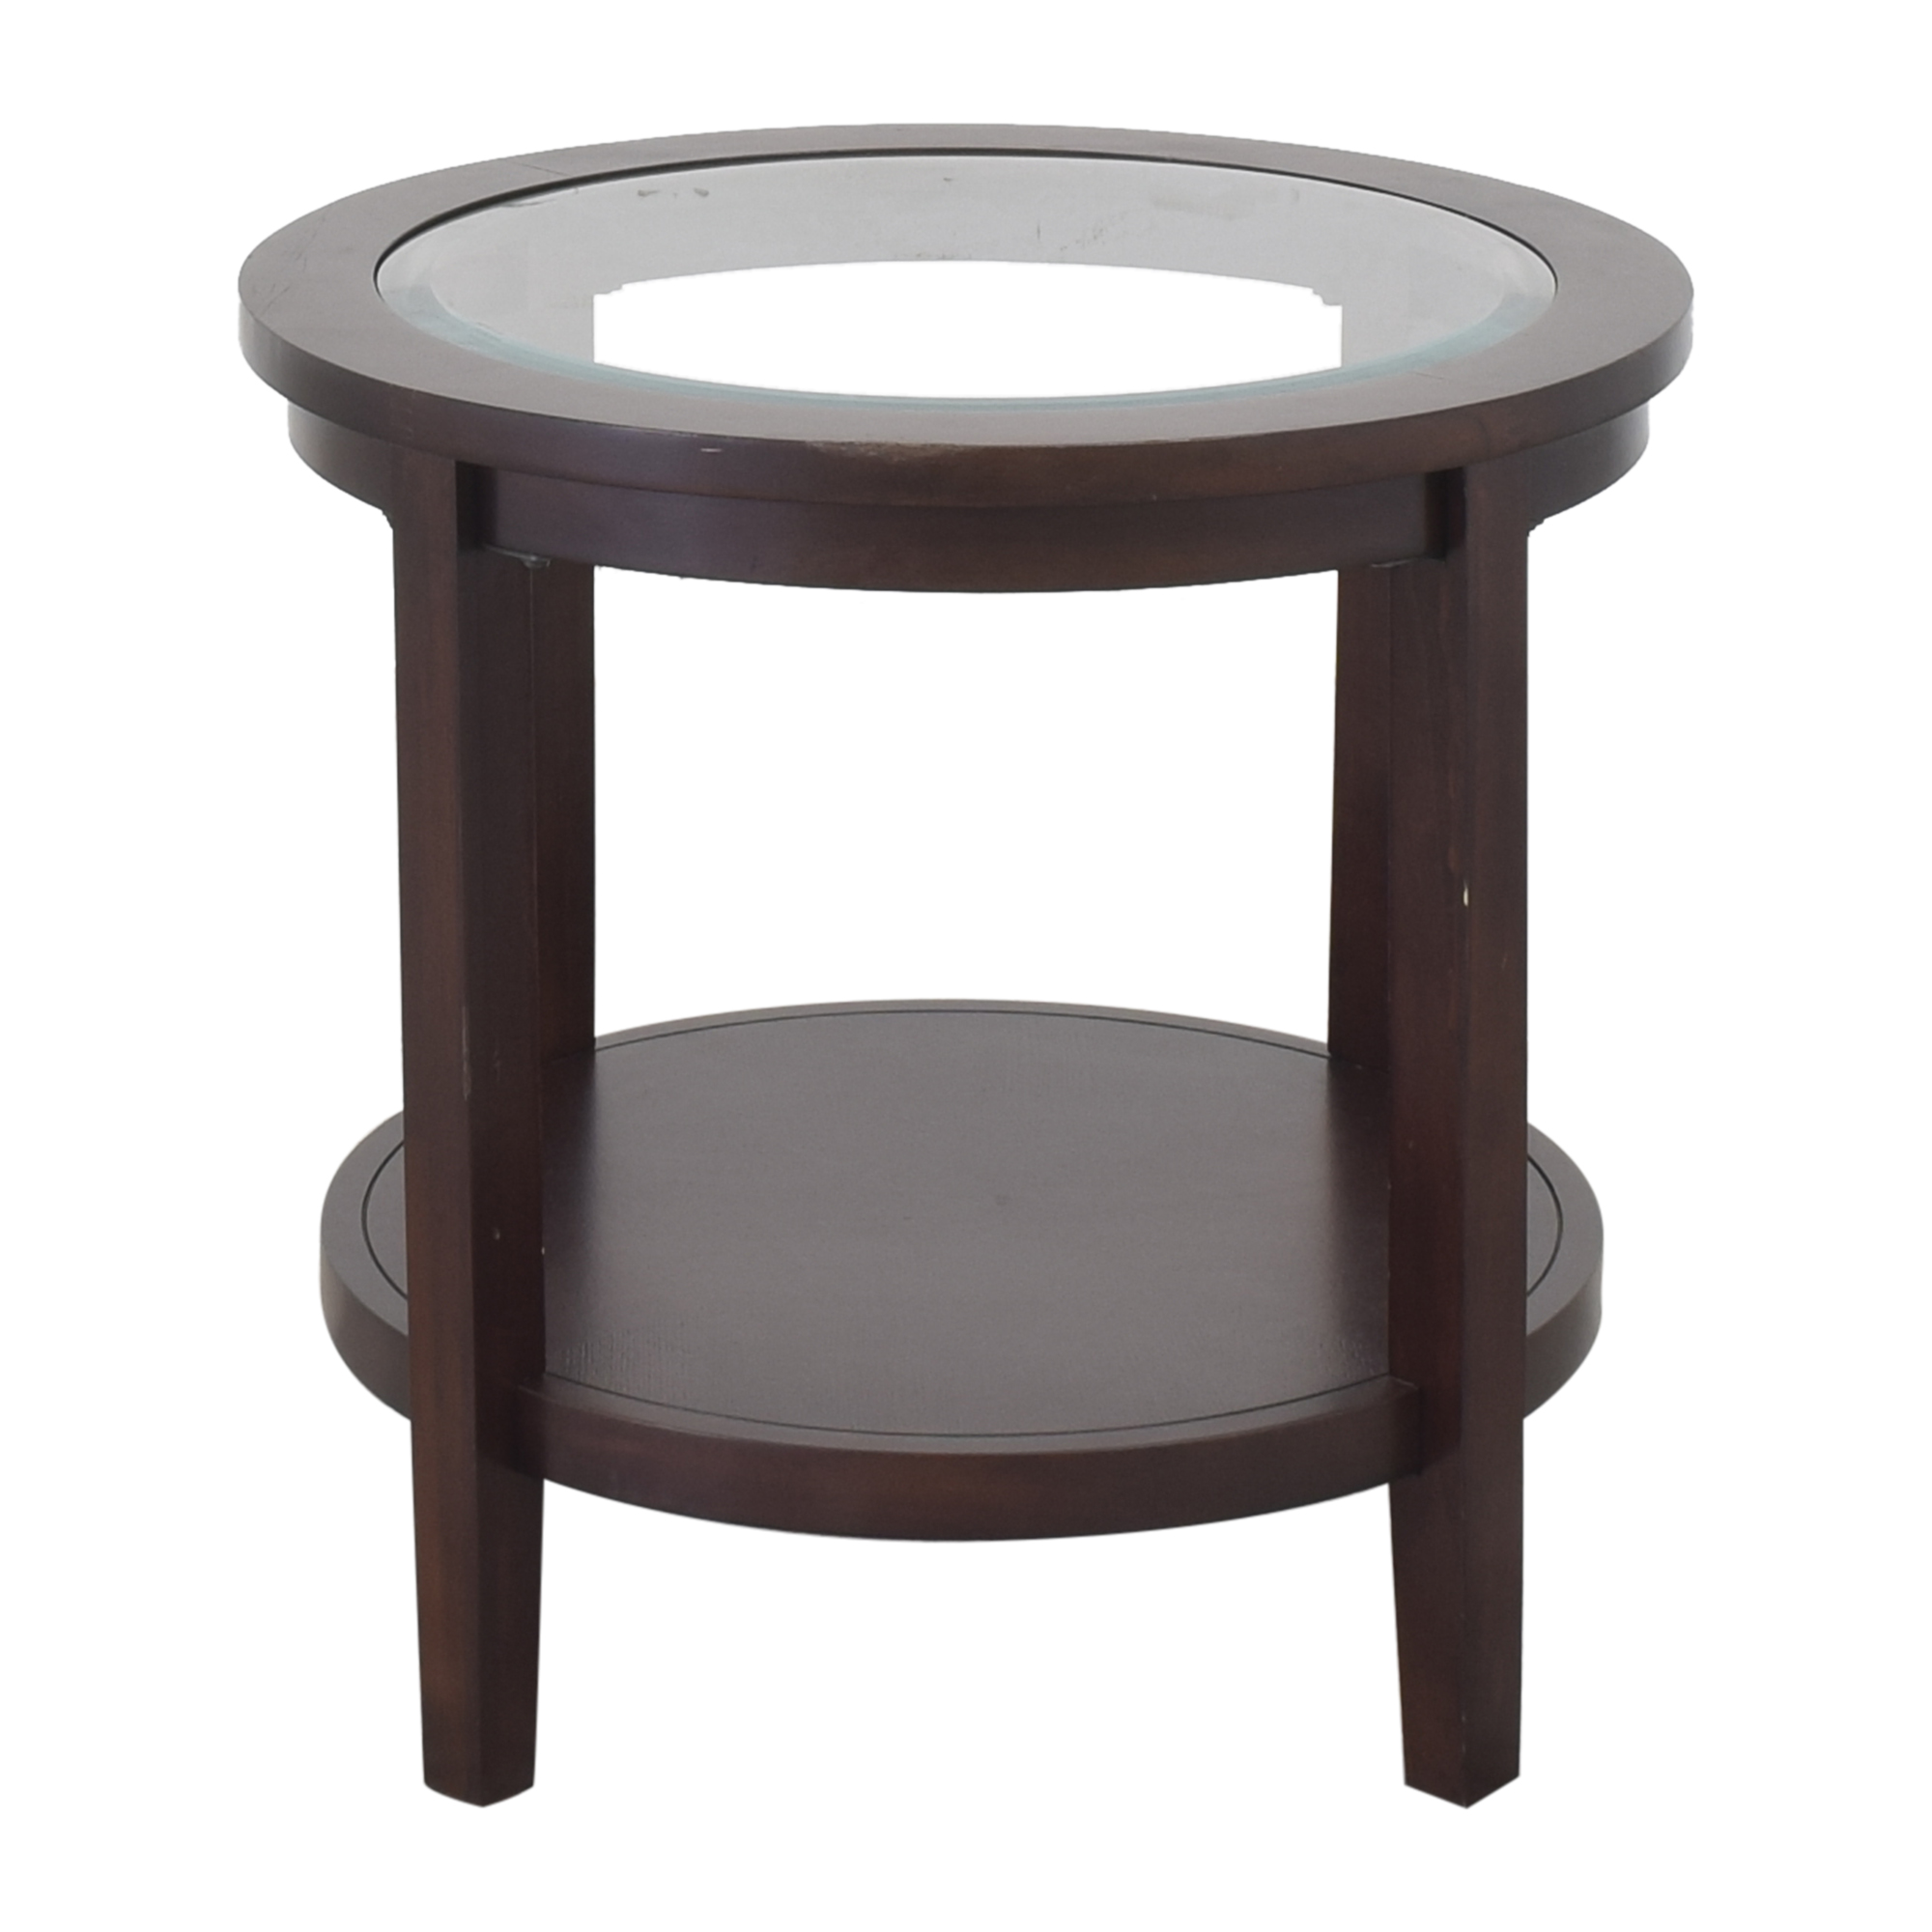 Z Gallerie Z Gallerie Round End Table Tables